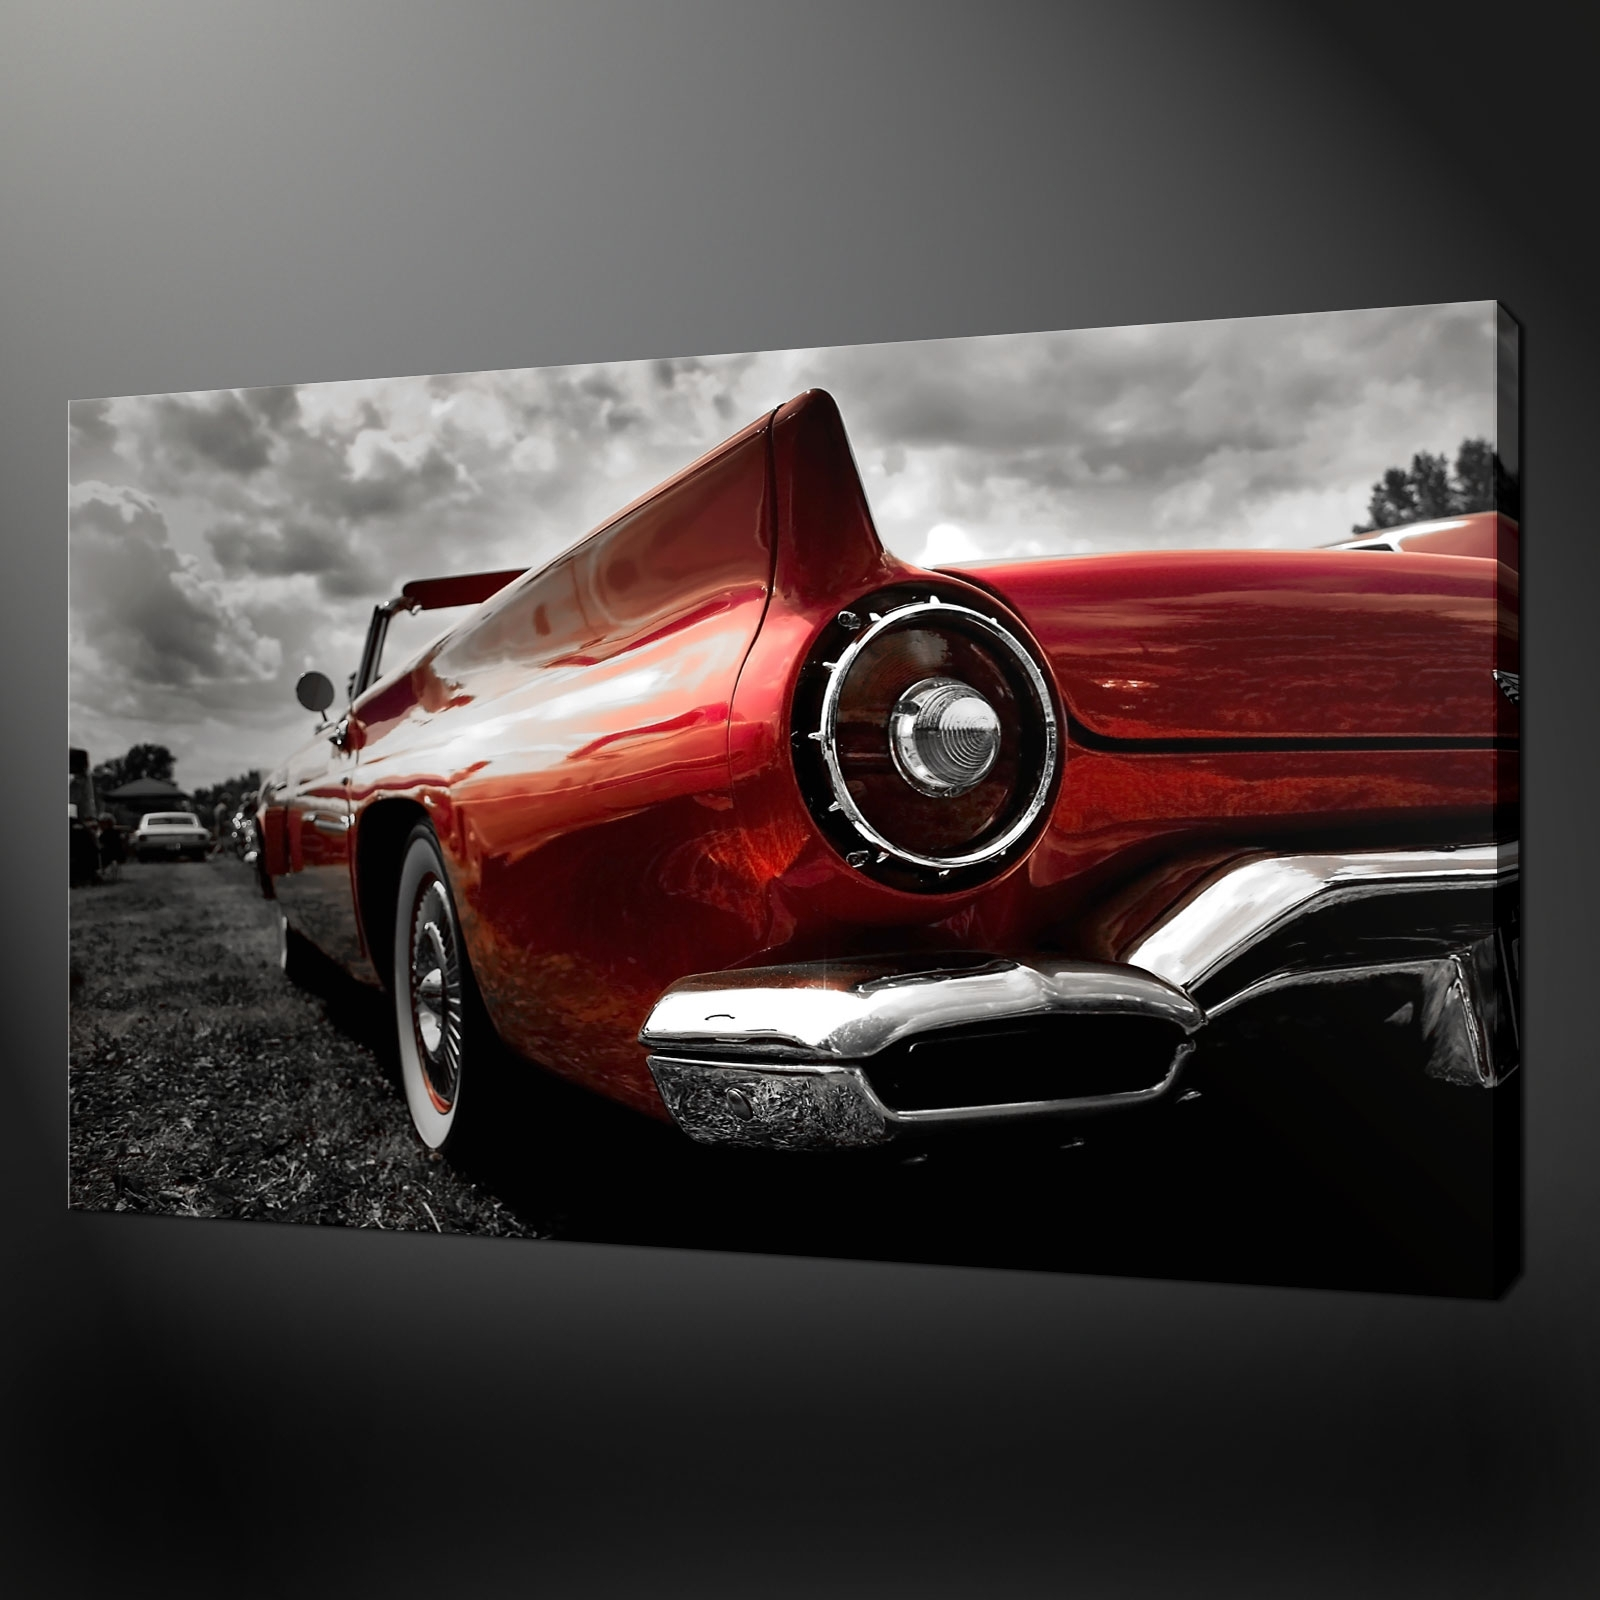 Classic Red Car Canvas Print Picture Wall Art regarding Car Canvas Wall Art (Image 16 of 20)